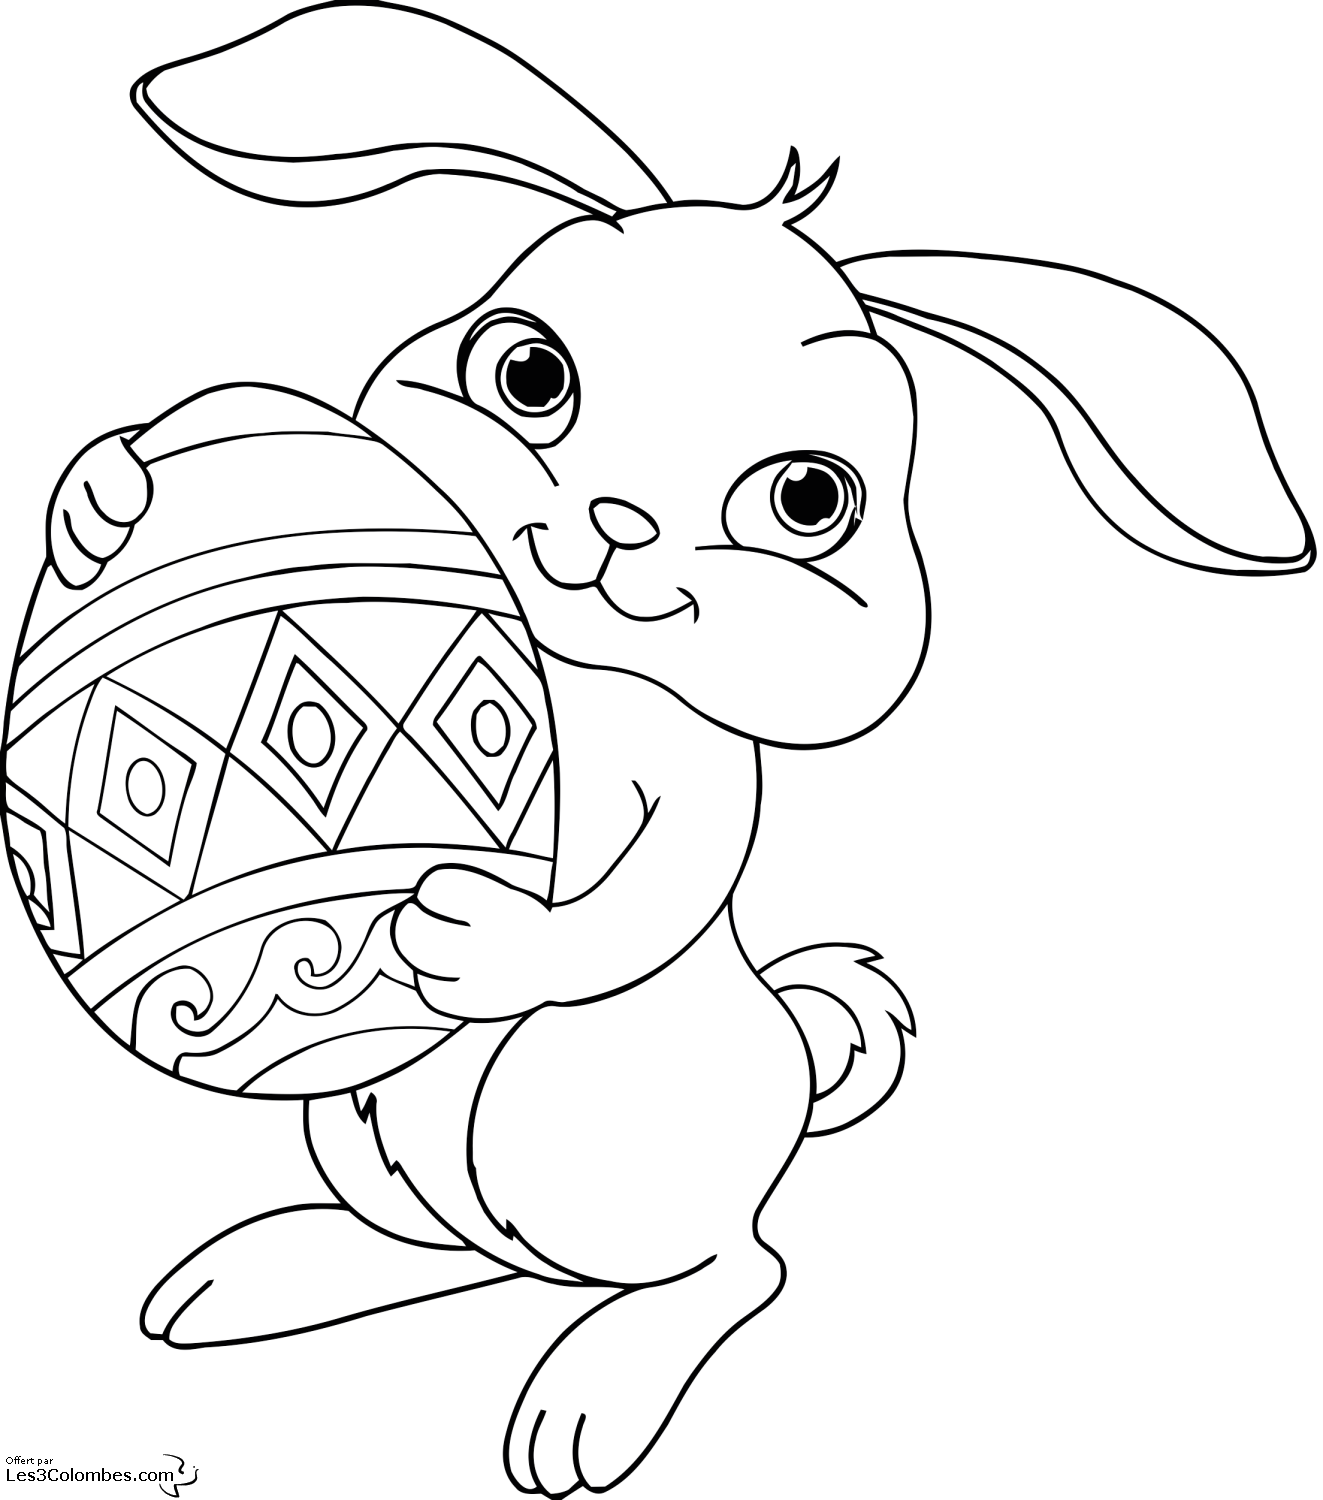 Free coloring pages of bunny mandalas - Coloriages lapin ...